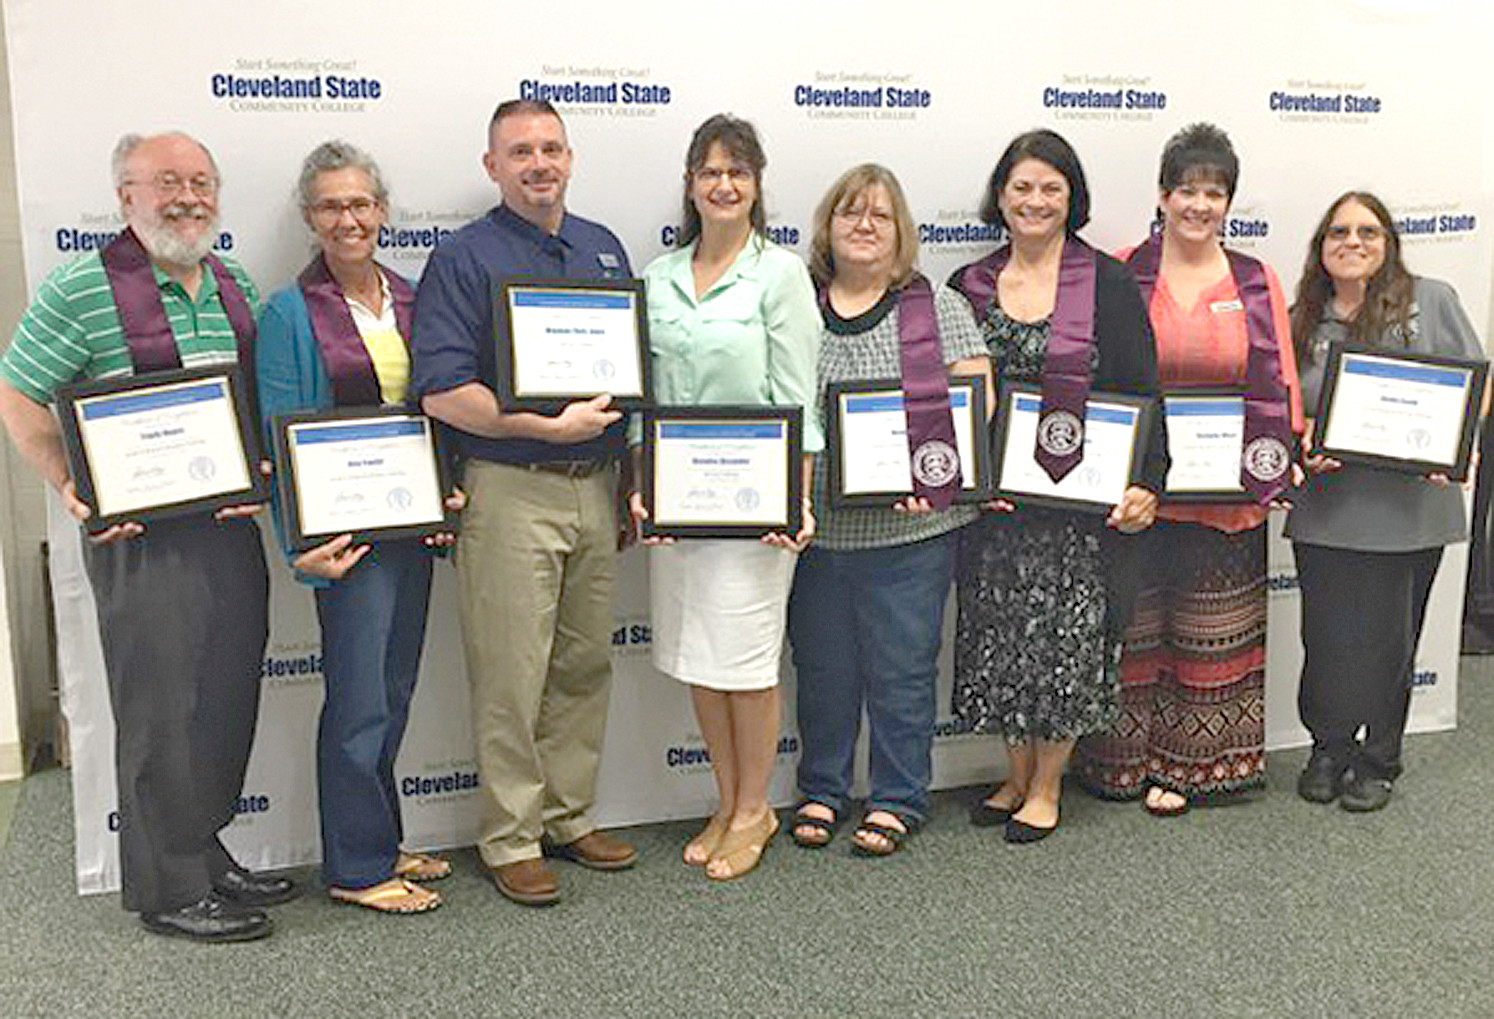 Faculty and staff members at Cleveland State Community College recently received recognition for completing Level I and II advisor training. From left are Travis Hayes, Level II; Amy Fowler, Level II; Chris Jones, Level I; Melodee Alexander, Level I; Vickie Still, Level II; Donna Brogdon, Level II; Stefanie West, Level II; and Shelia Smith, Level II.